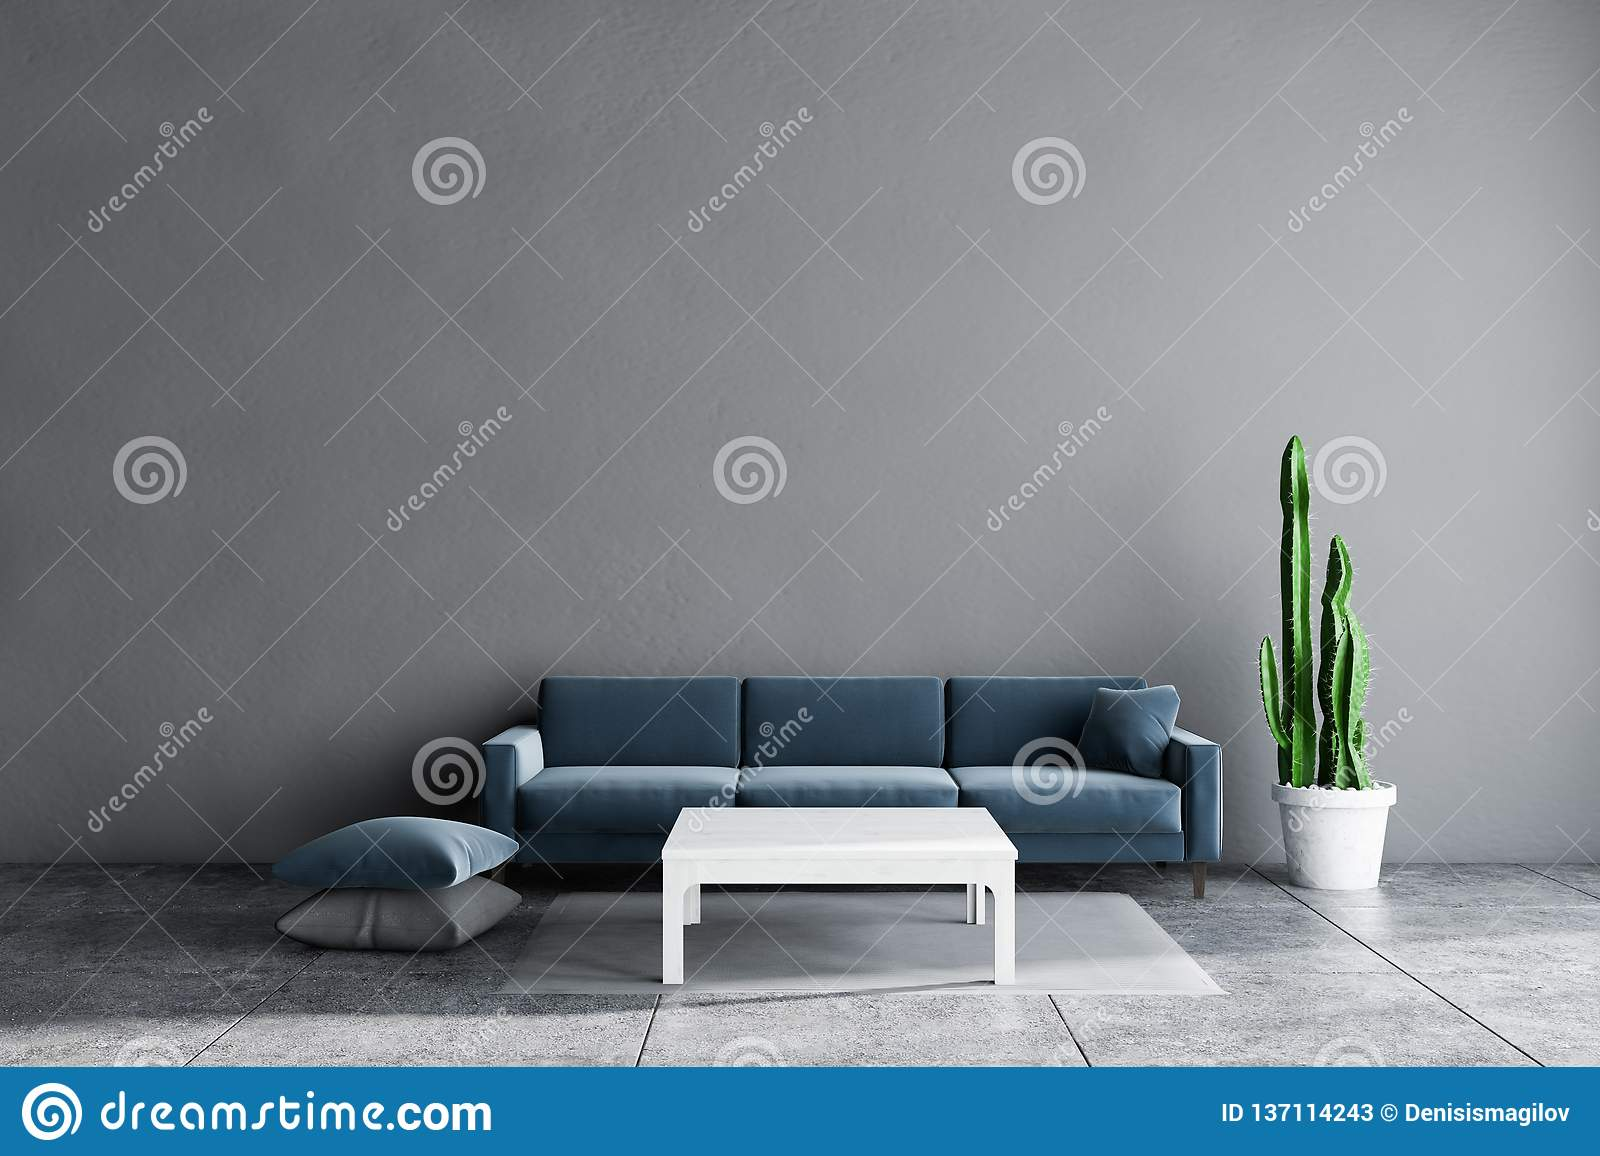 Outstanding Gray Living Room Blue Sofa White Table Stock Illustration Beatyapartments Chair Design Images Beatyapartmentscom